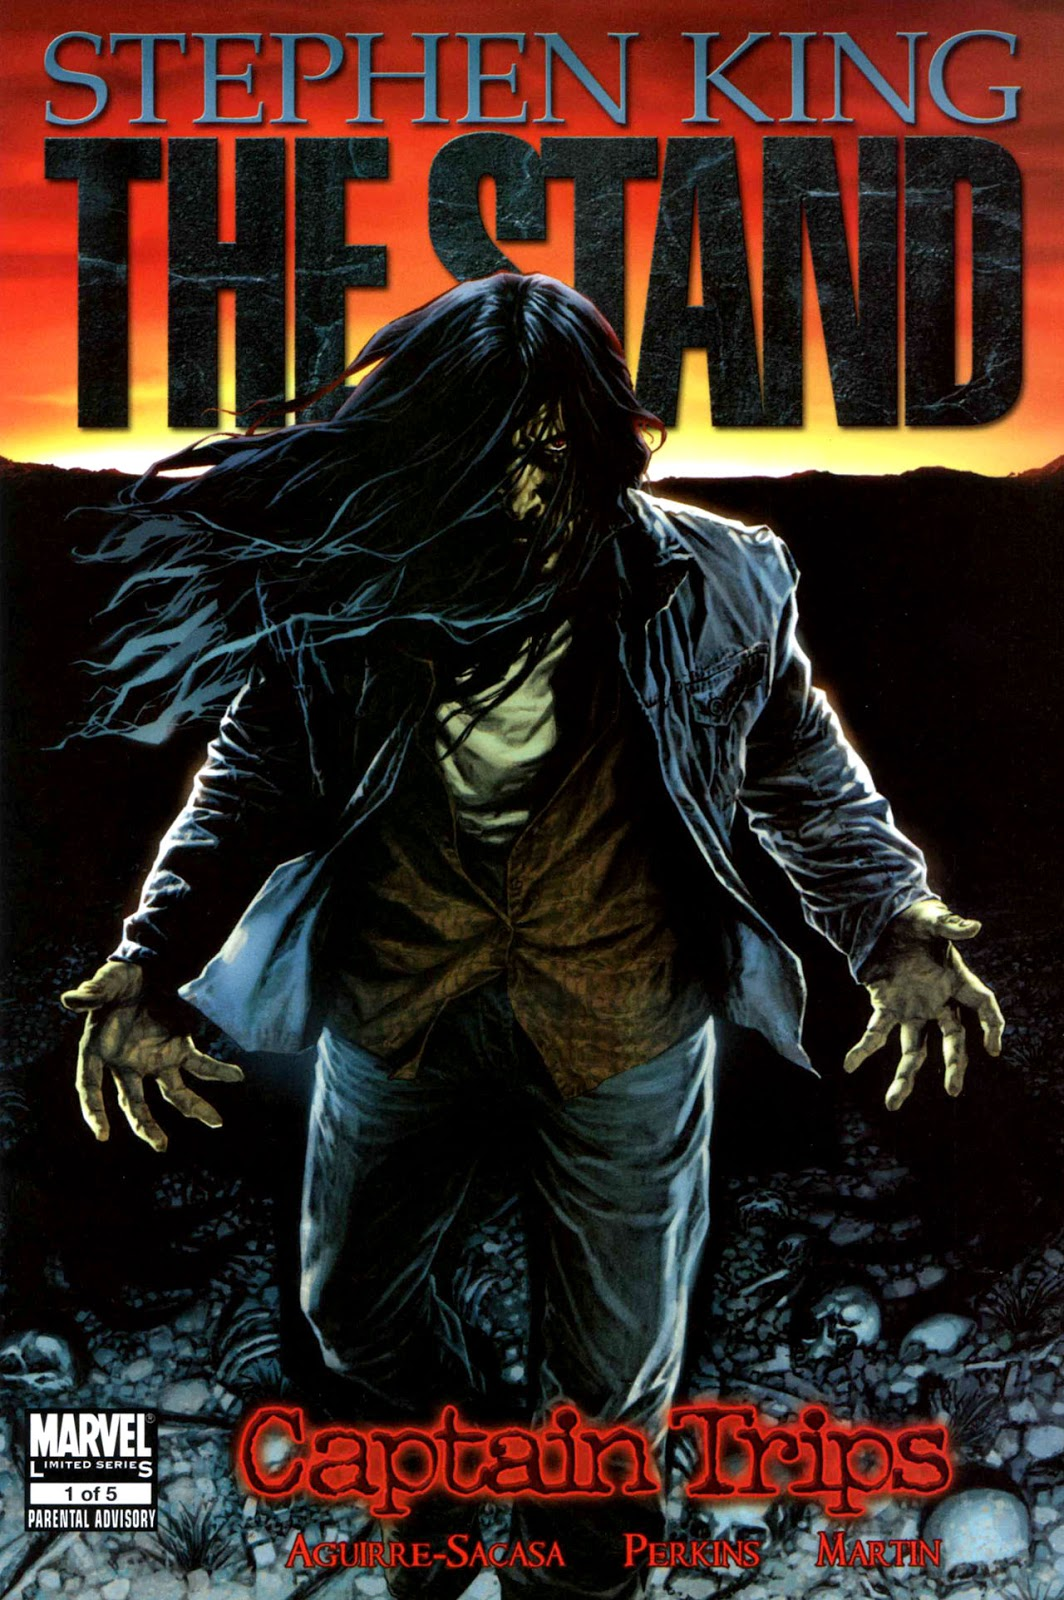 a book review about the book the stand by steven king Horrormeister king (end of watch, 2016, etc) serves up a juicy tale that plays at the forefront of our current phobias, setting a police procedural among the creepiest depths of the supernatural.